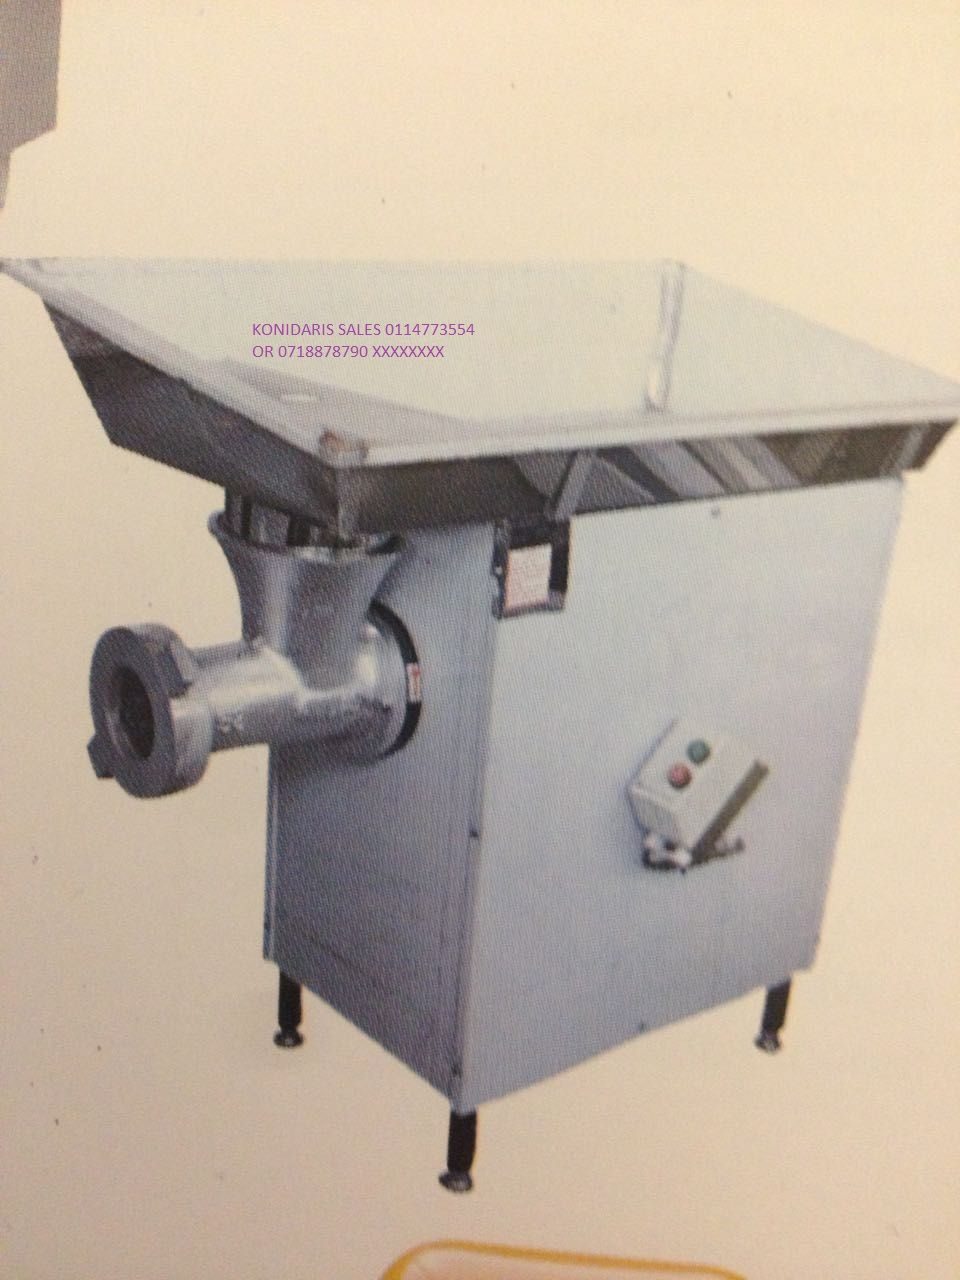 MINCER 52 R26500.00 EX VAT BRAND NEW WOW